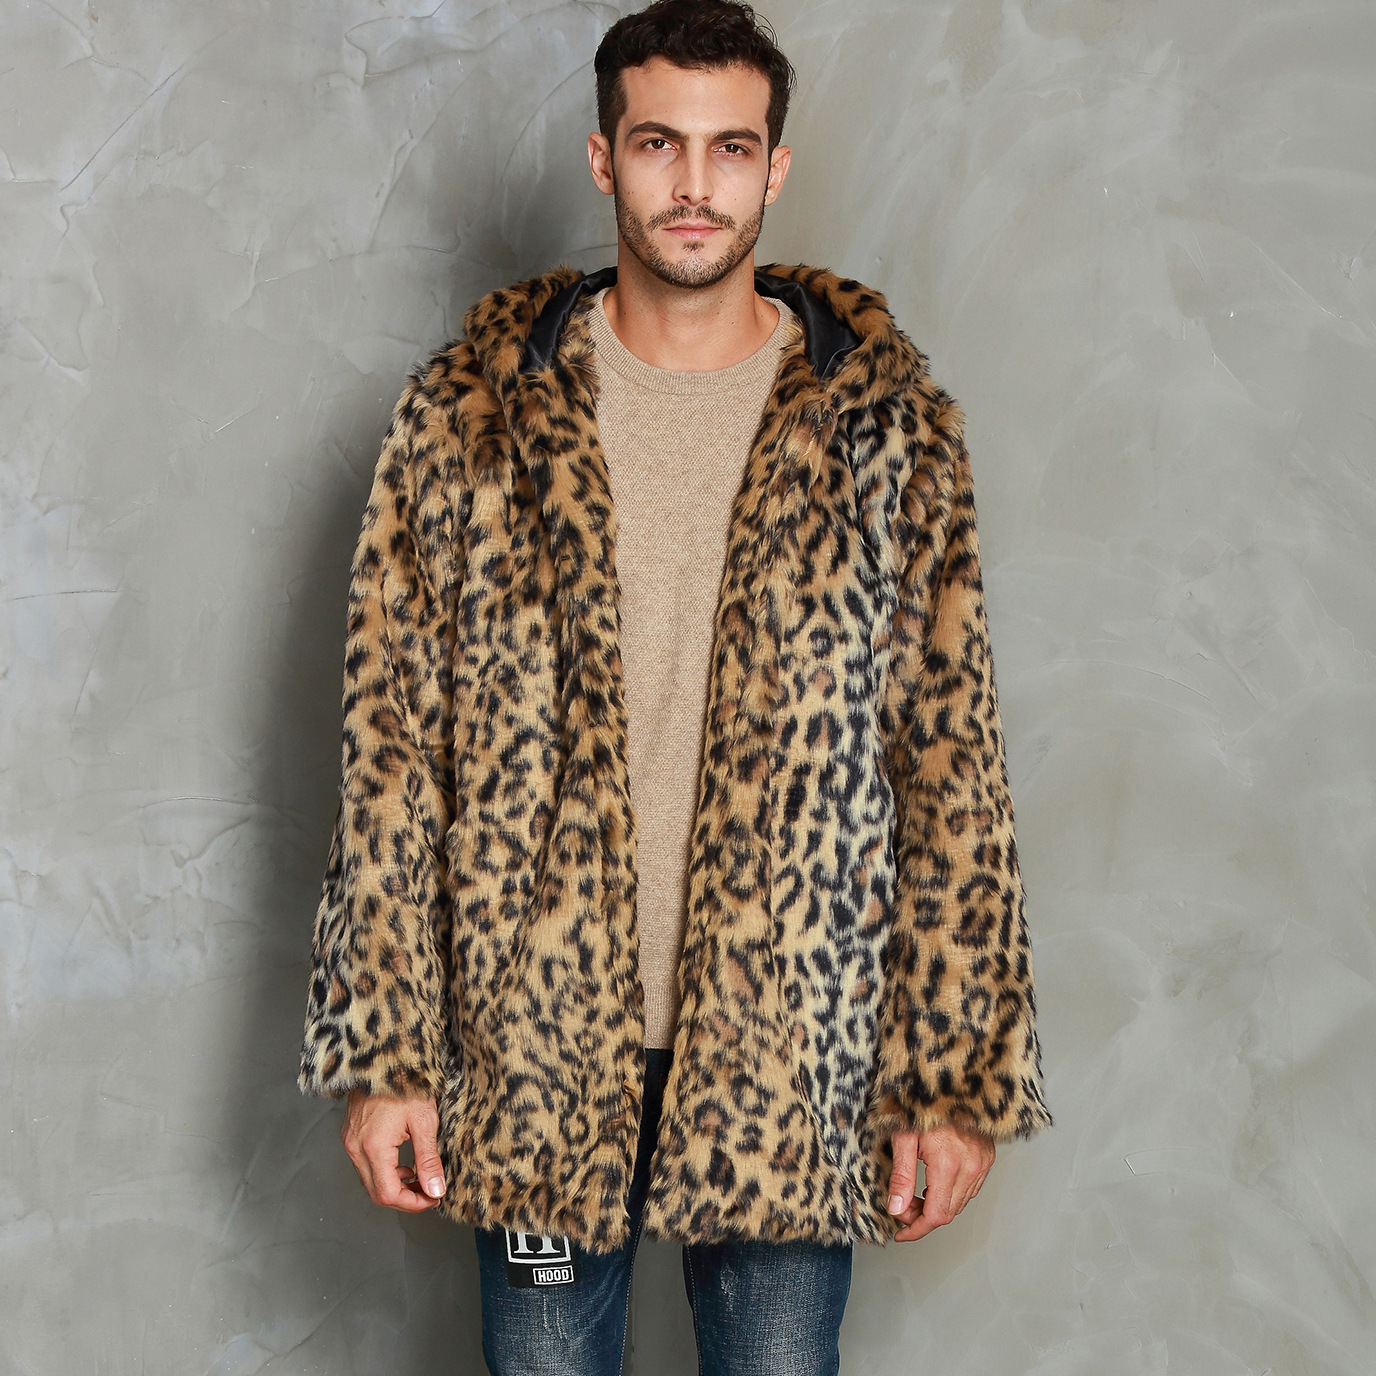 F0284 European And American Autumn And Winter Clothing Leopard Print Men Faux Fur Coat